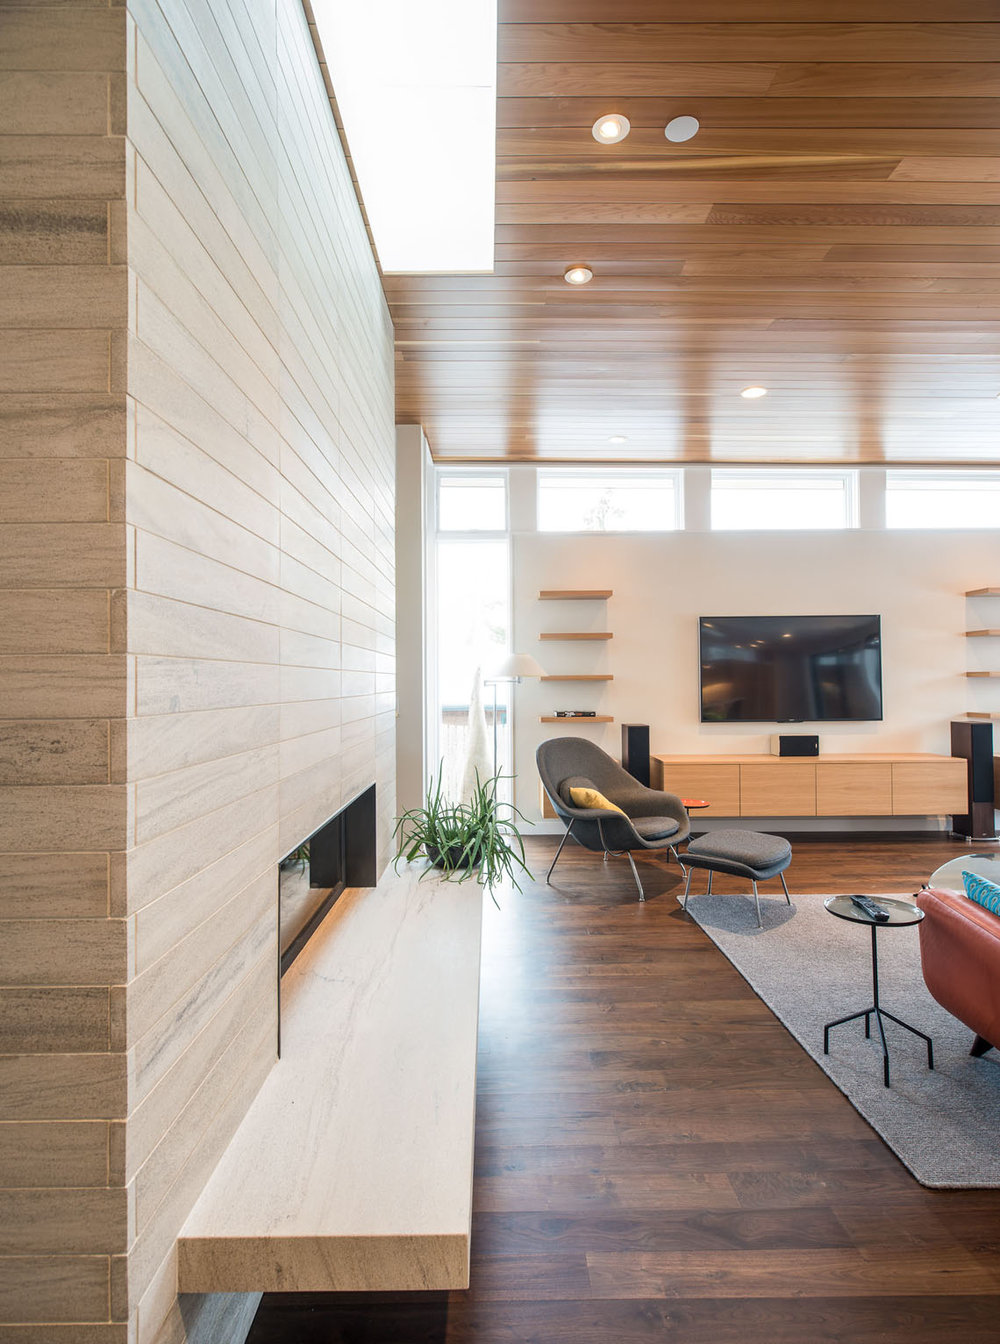 Modern stone fireplace detail with corresponding wood paneled ceiling